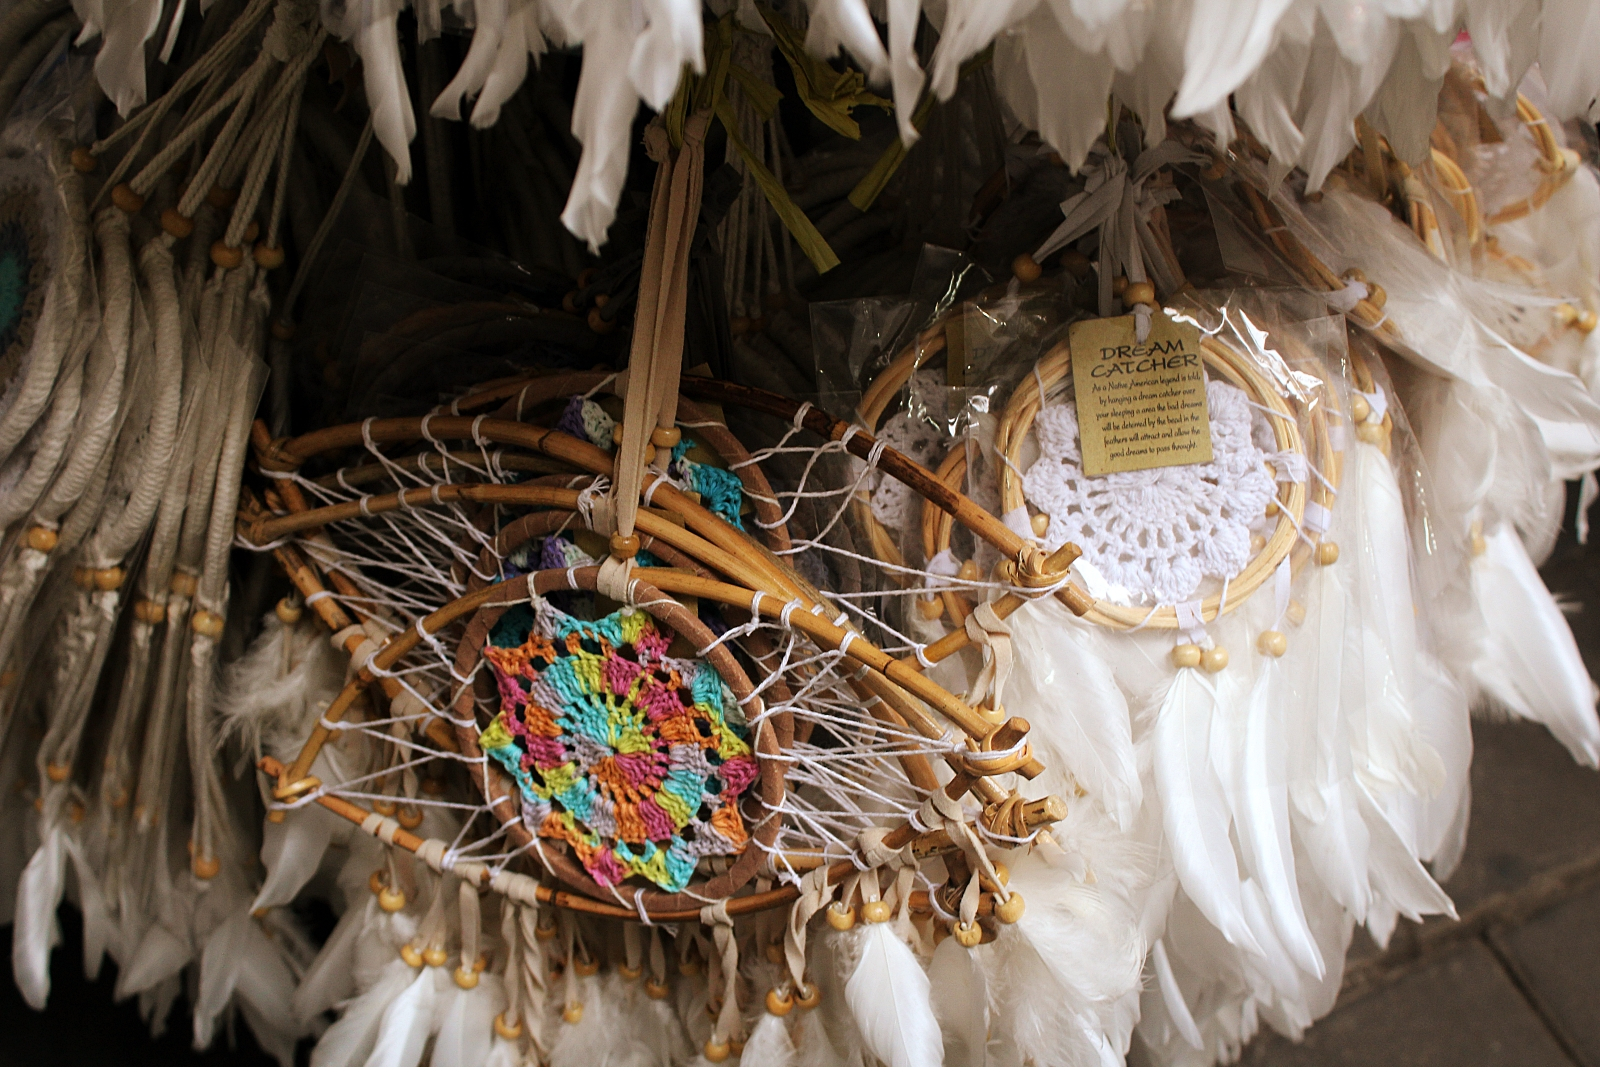 Ubud Art Market Dream Catcher